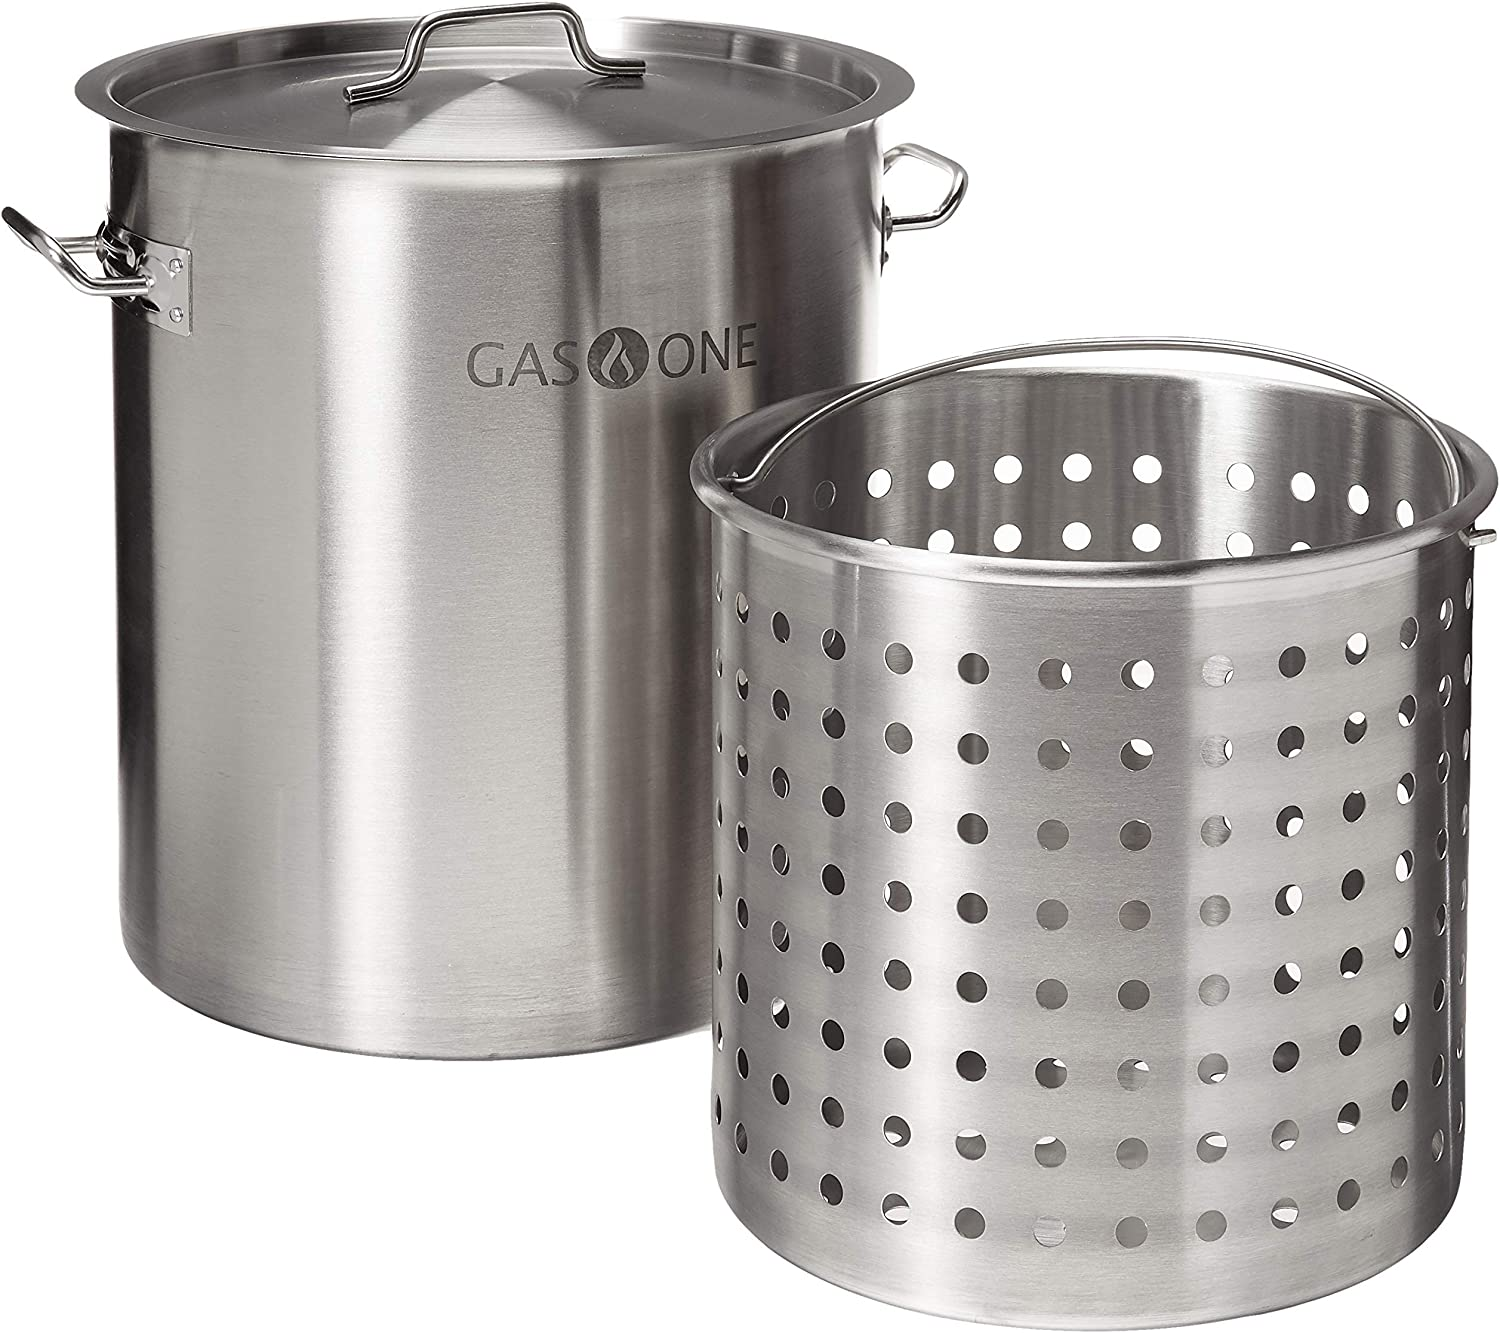 Gas One TP-32 32 QT Stainless Steel Tri Ply Bottom with All Purpose Pot Deep Fryer Steam and Boiling Basket, Quart (Renewed)